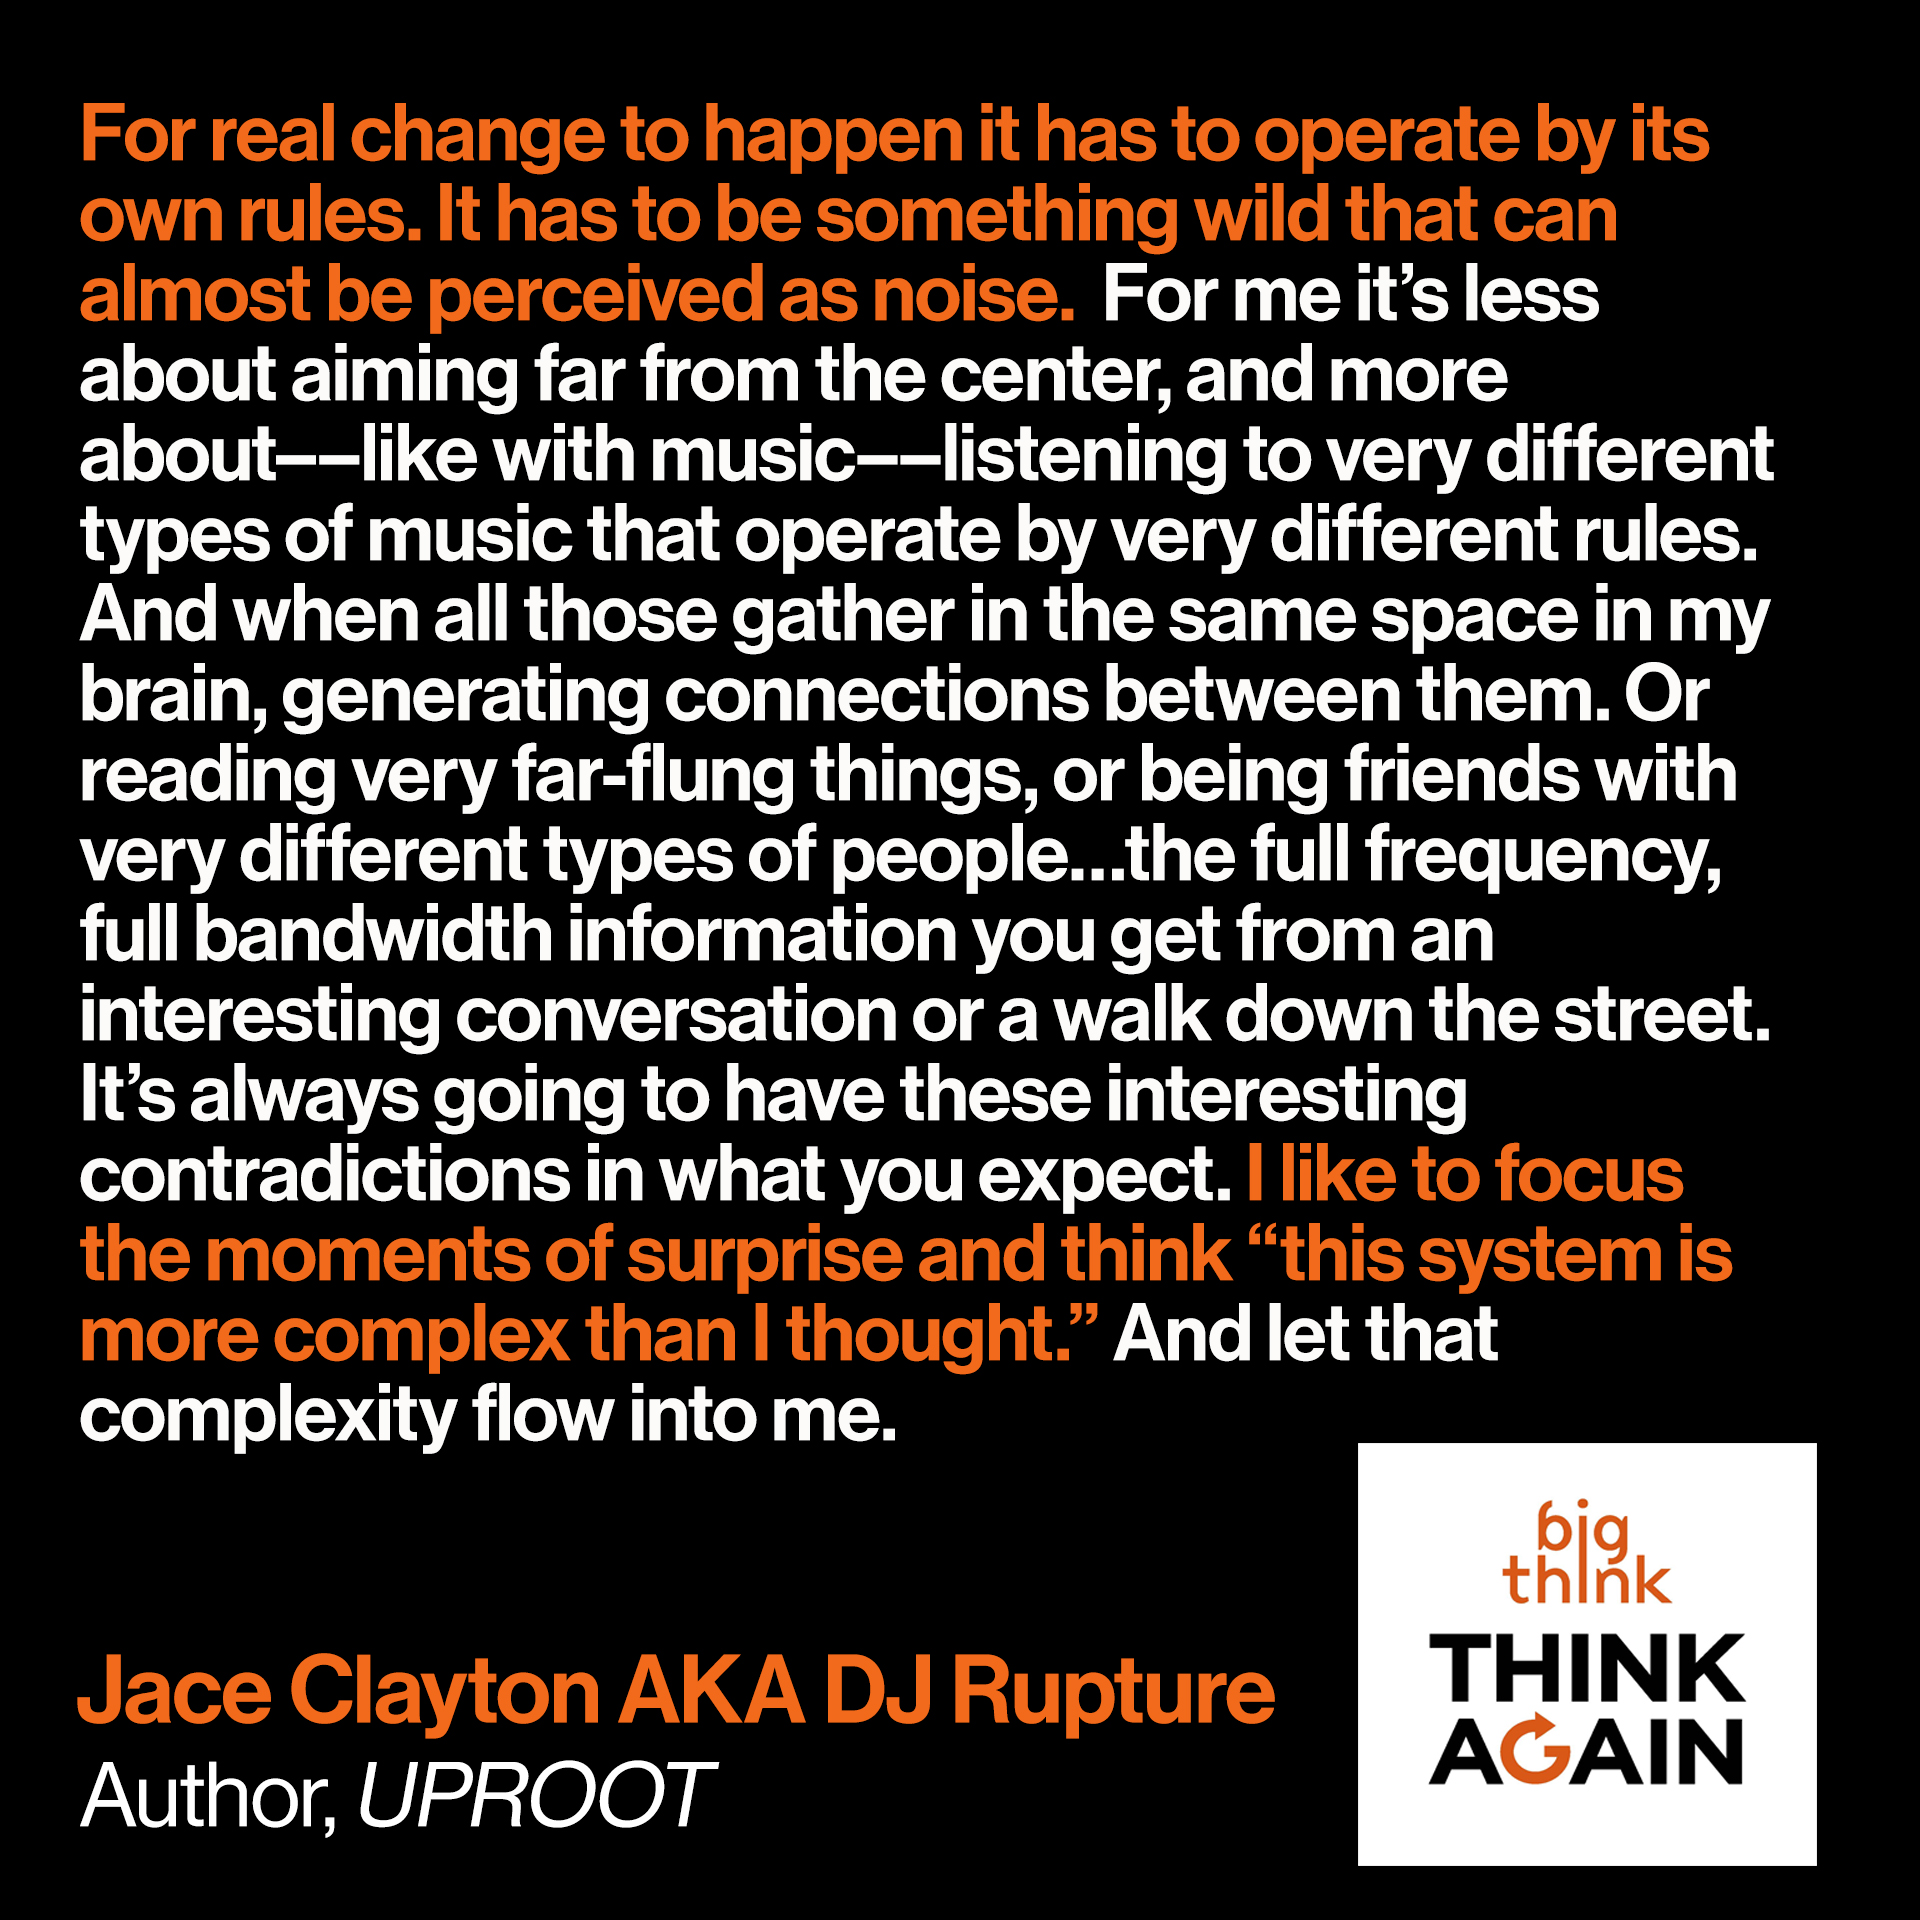 "Jace Clayton Quote: For real change to happen it has to operate by its own rules. It has to be something wild that can almost be perceived as noise.  For me it's less about aiming far from the center, and more about––like with music––listening to very different types of music that operate by very different rules. And when all those gather in the same space in my brain, generating connections between them. Or reading very far-flung things, or being friends with very different types of people…the full frequency, full bandwidth information you get from an interesting conversation or a walk down the street. It's always going to have these interesting contradictions in what you expect. I like to focus the moments of surprise and think ""this system is more complex than I thought."" And let that complexity flow into me."